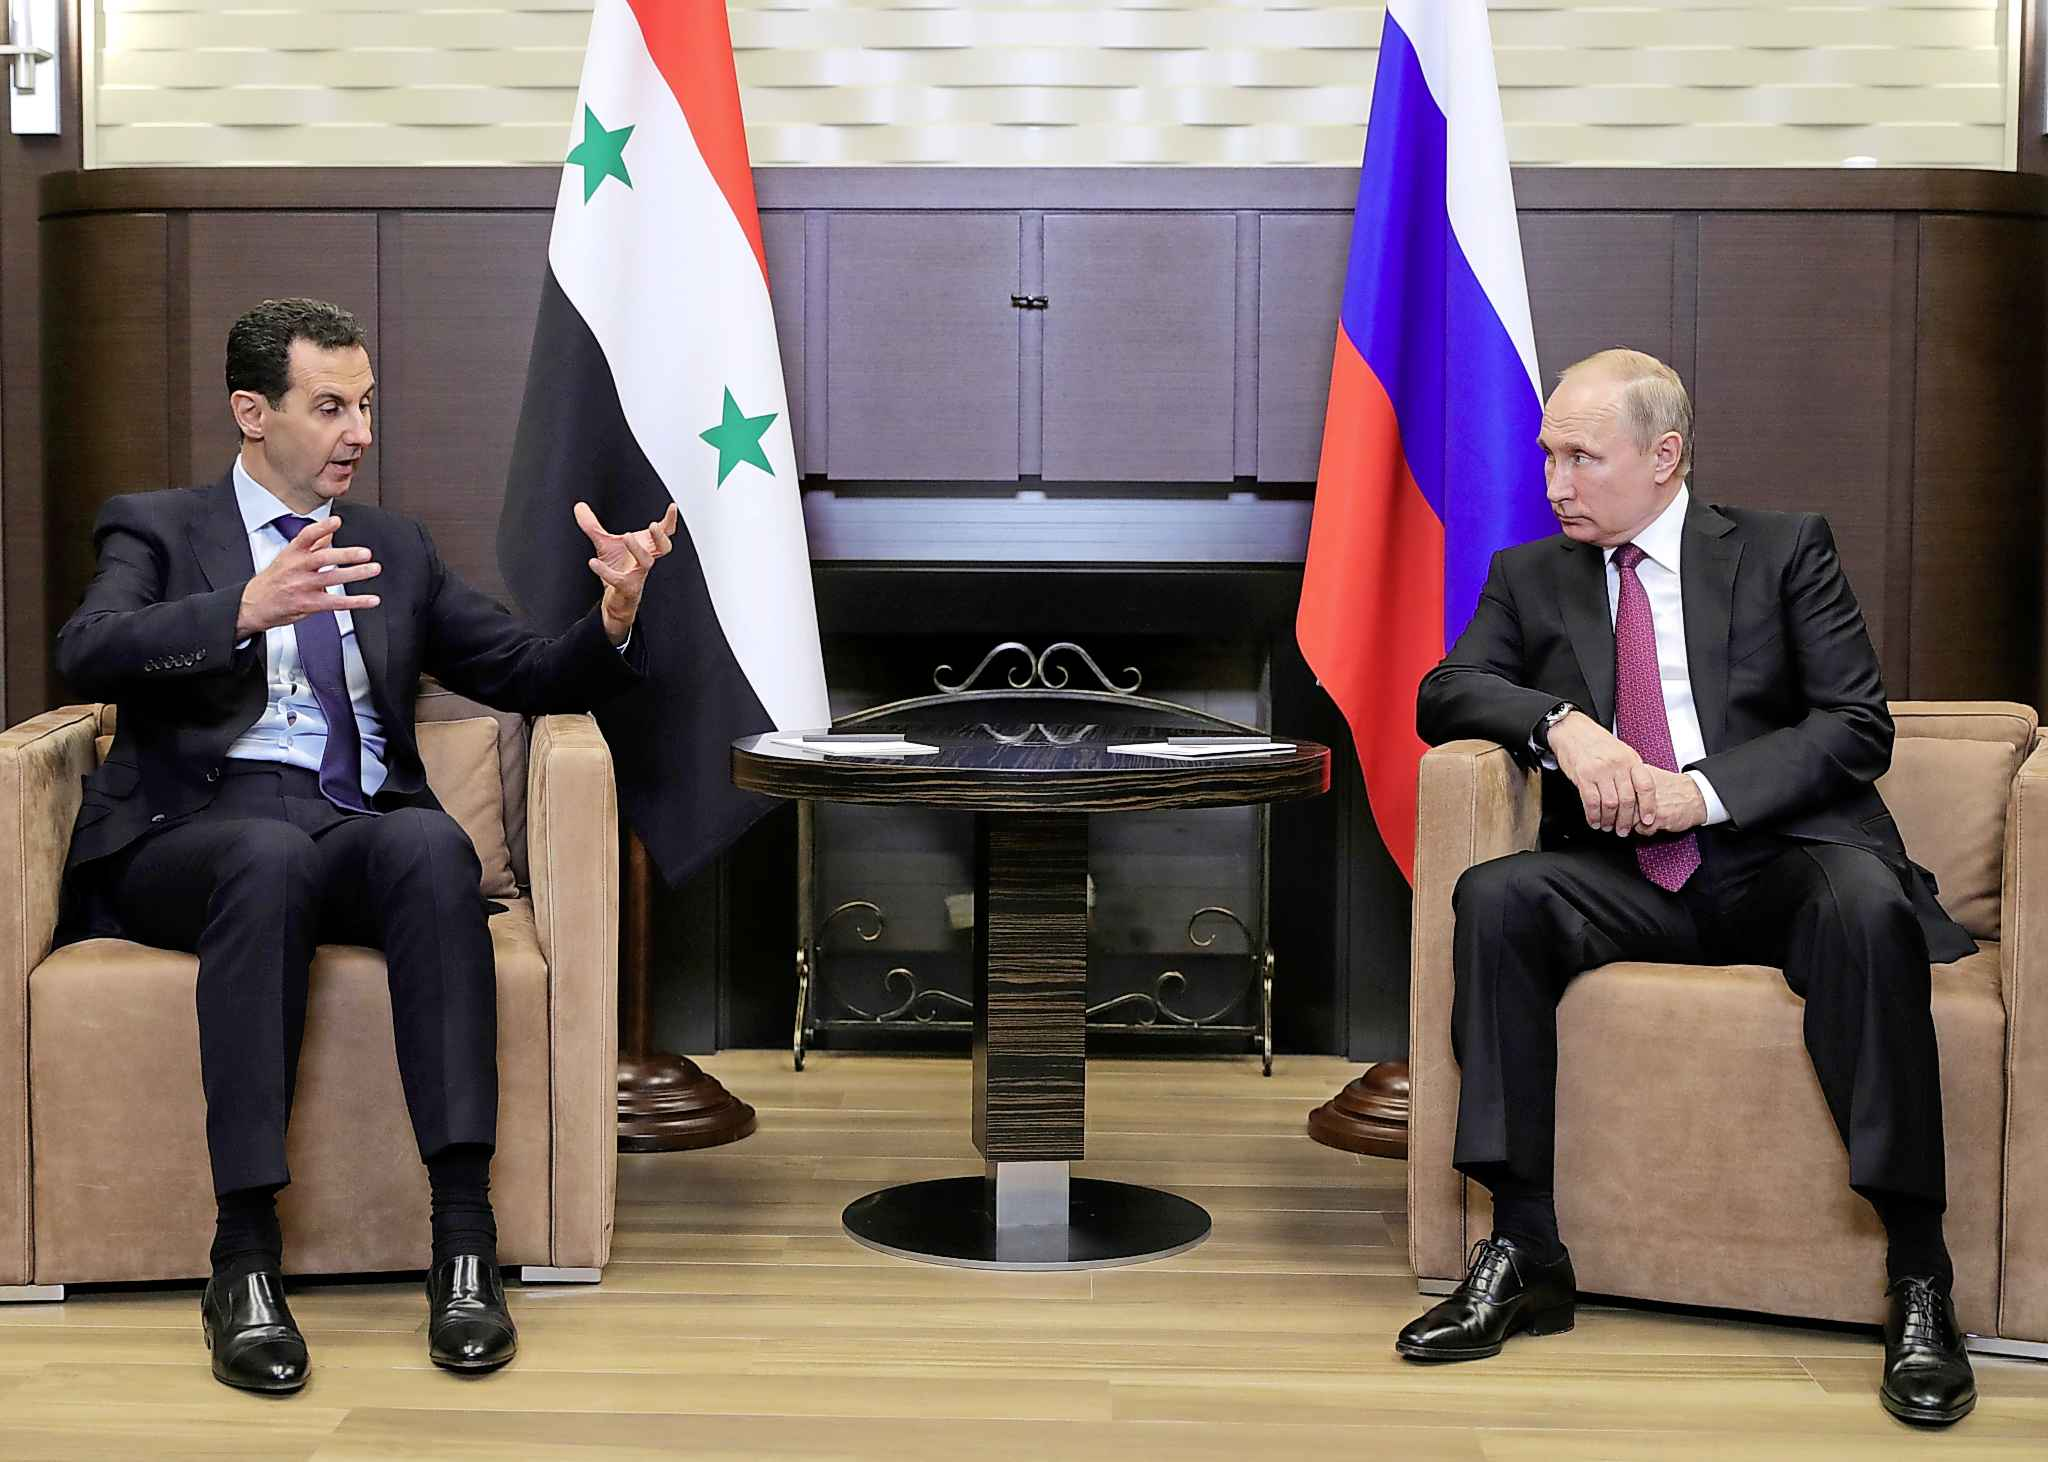 In a desperate stab at self-preservation, Kurdish leaders struck a deal with Syrian President Bashar Assad (left), who, with the support of Russian President Vladimir Putin, committed to sending Syrian forces into northern regions that have long been controlled by Kurds. (Mikhail Klimentyev / Pool / Associated Press files))